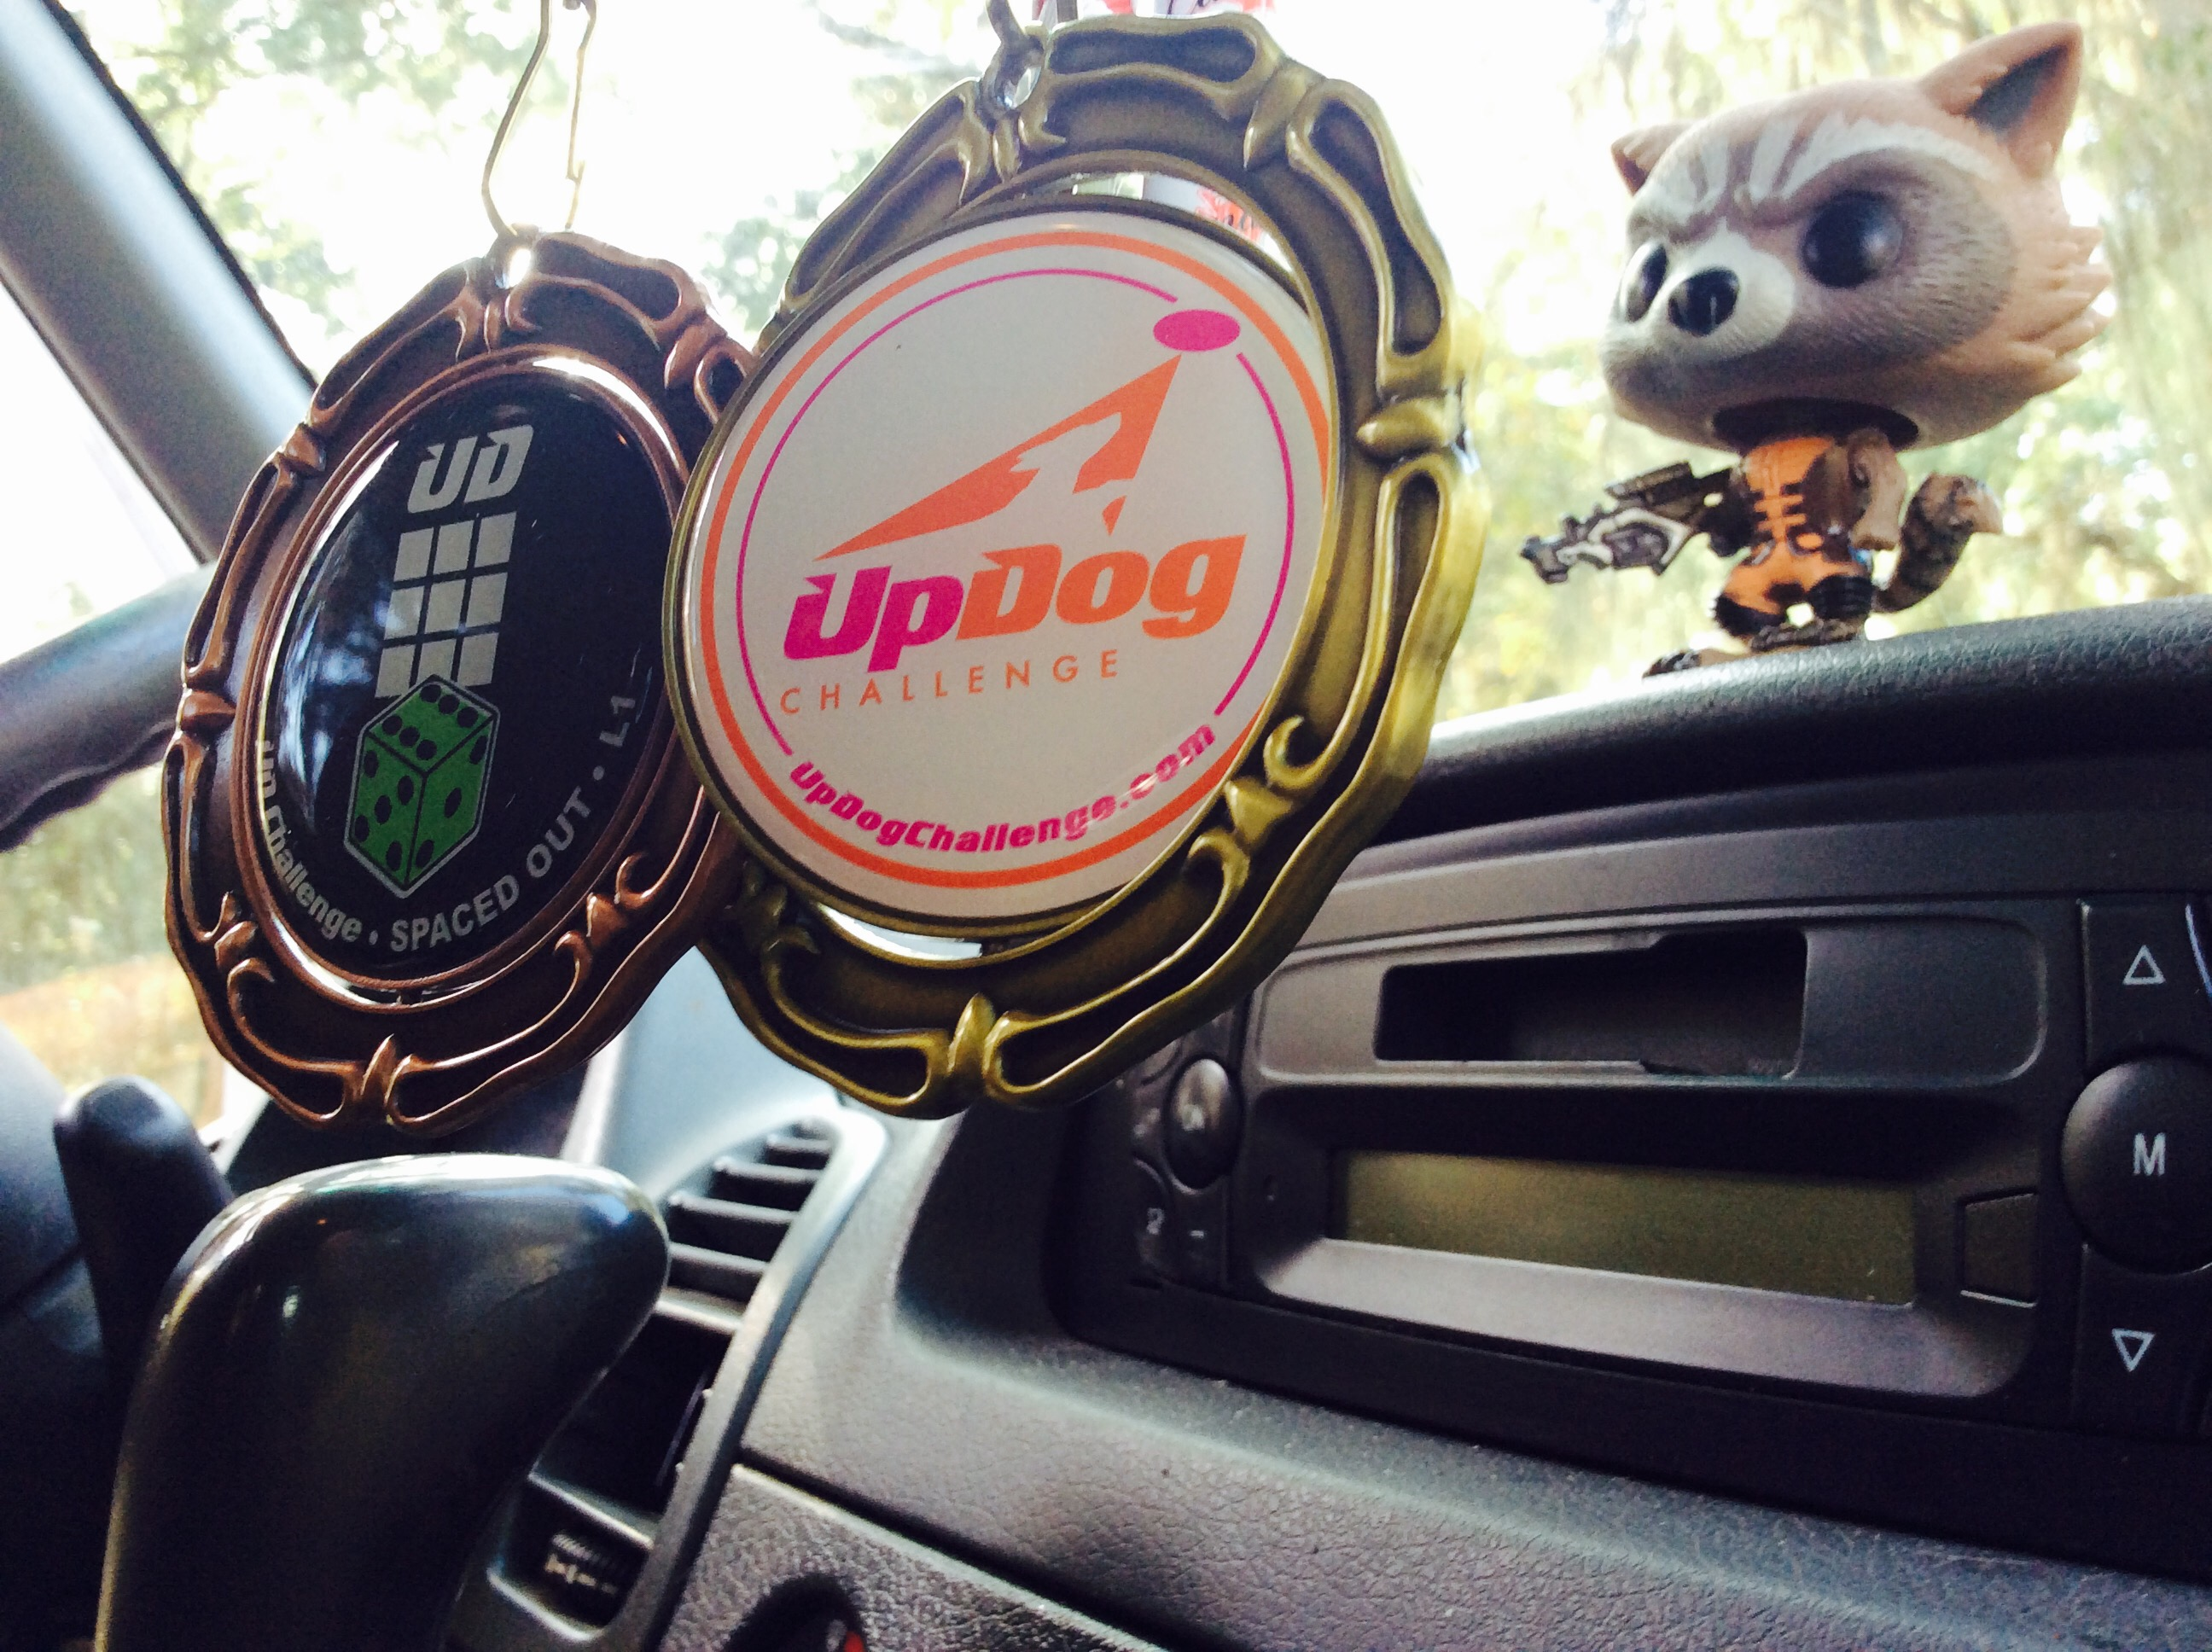 UpDog Spaced Out Level 1 Medals